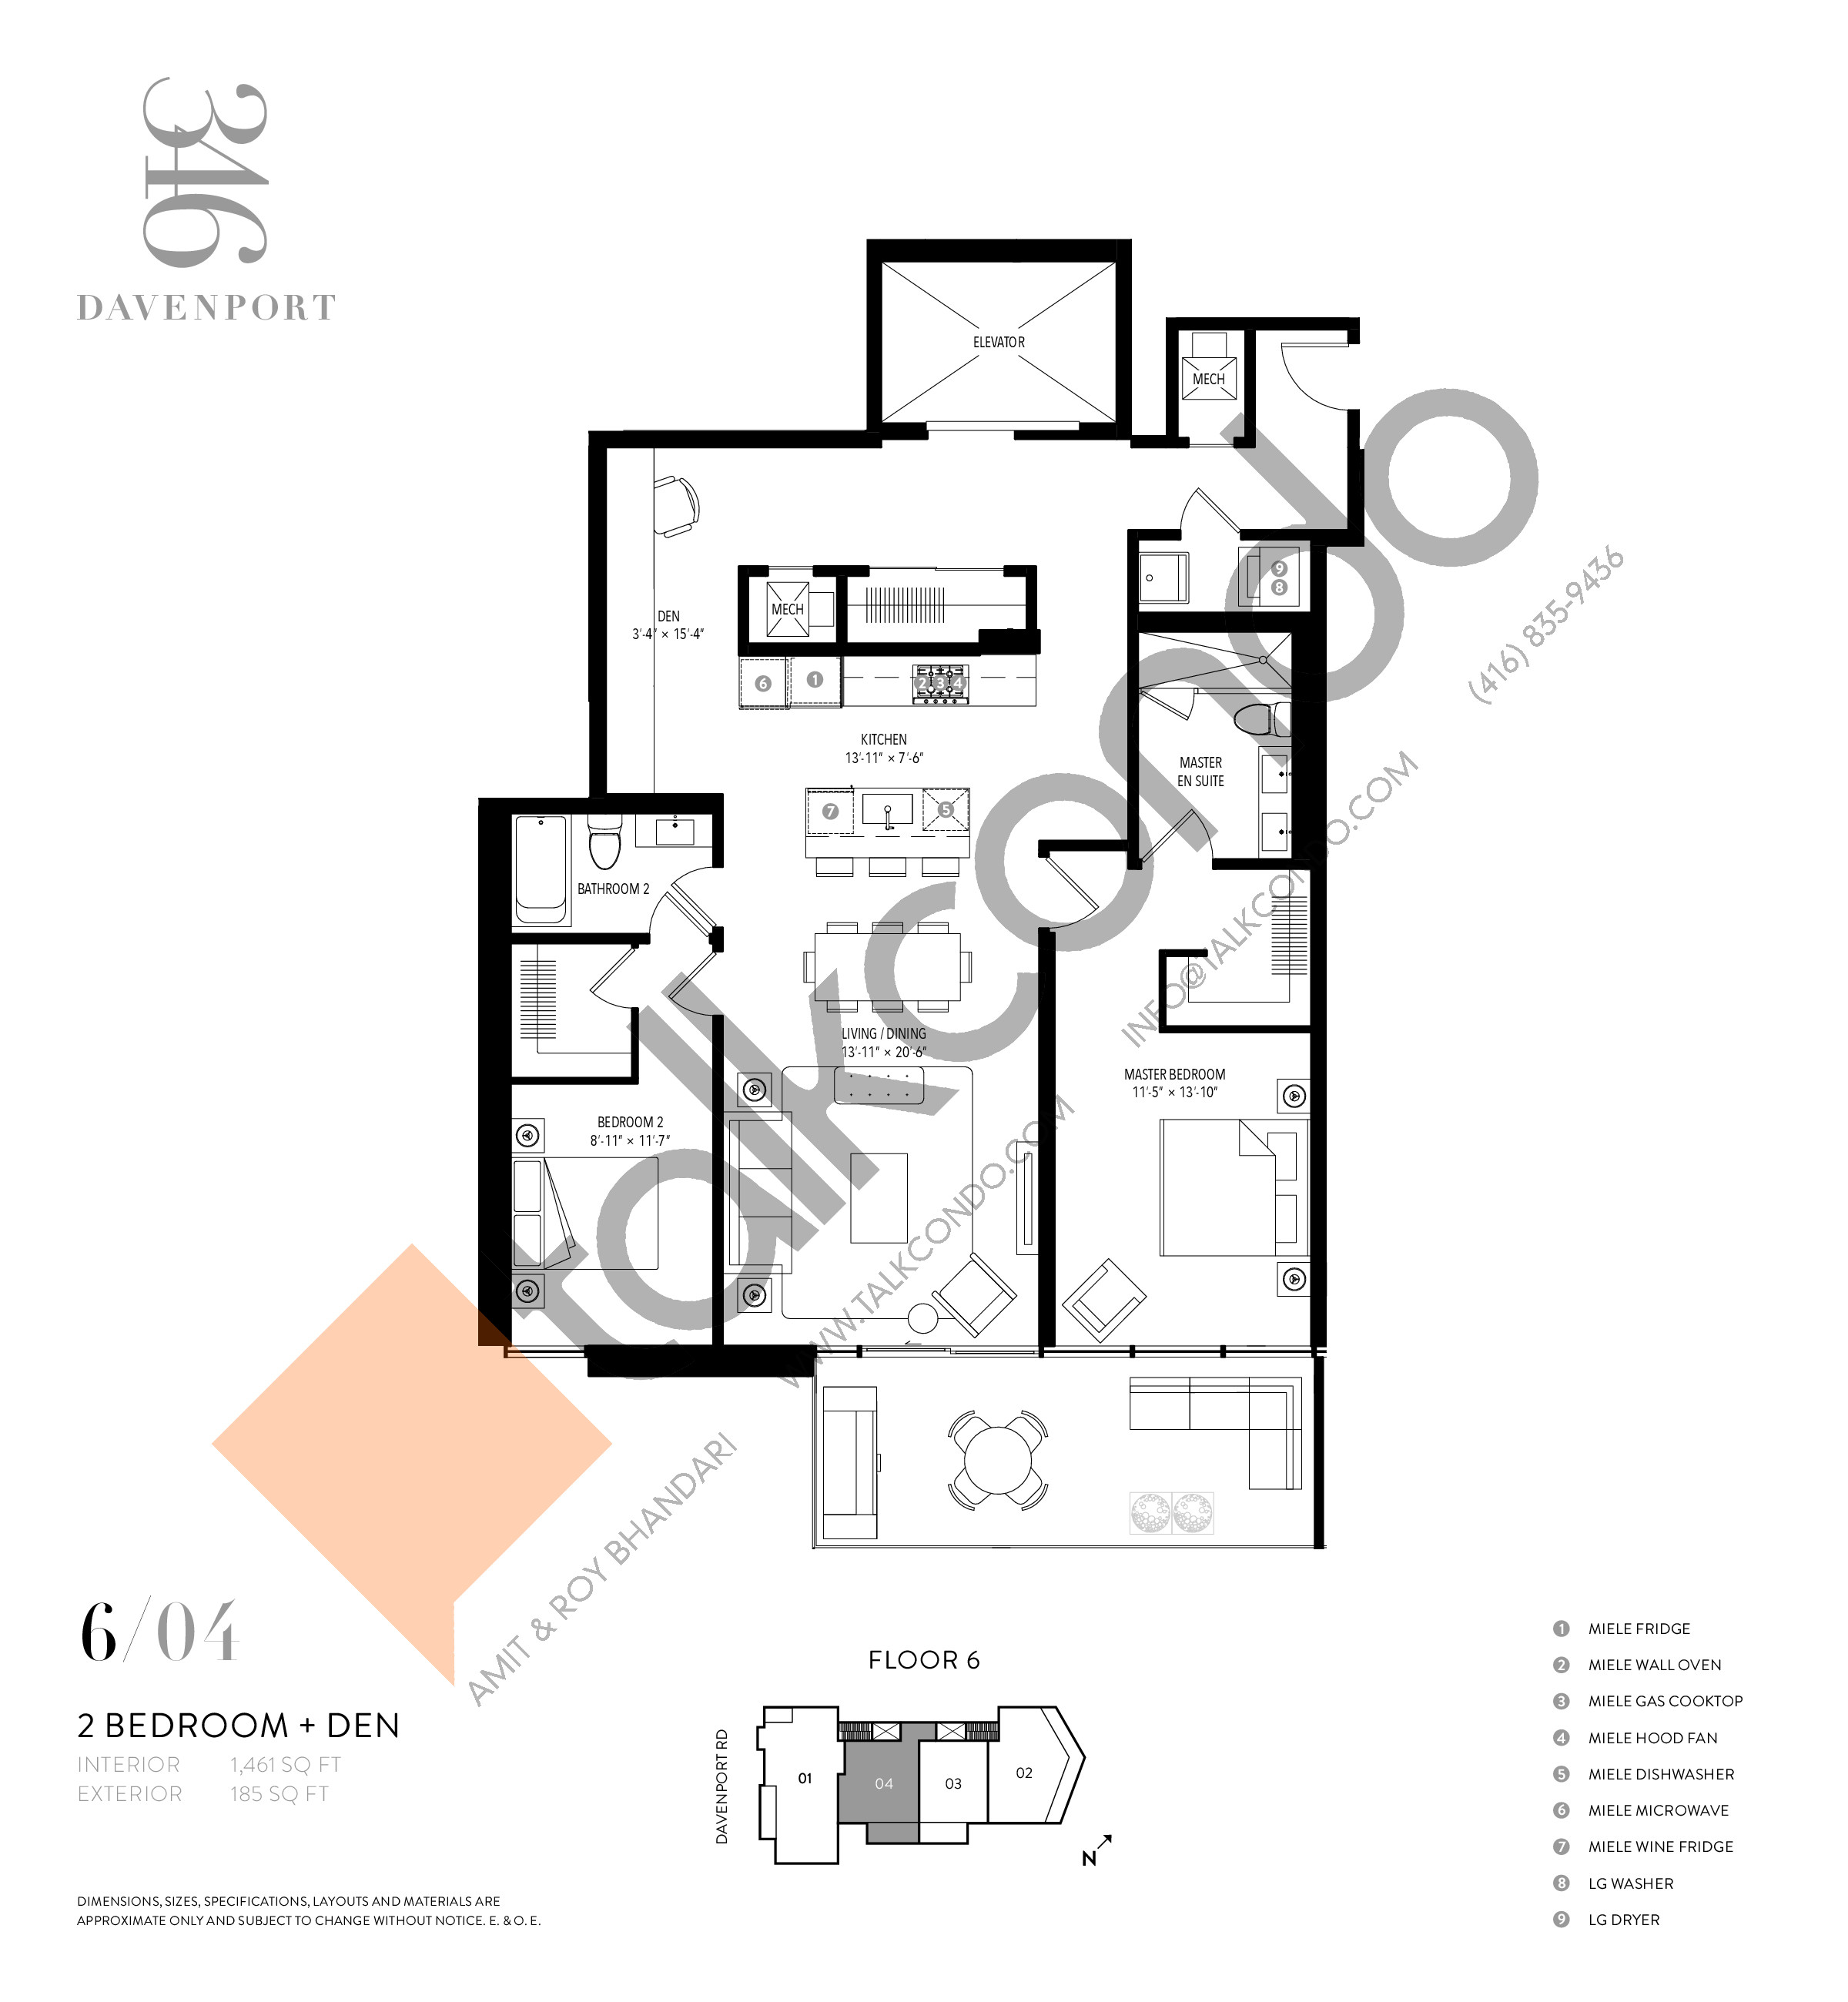 604 Floor Plan at 346 Davenport Condos - 1461 sq.ft